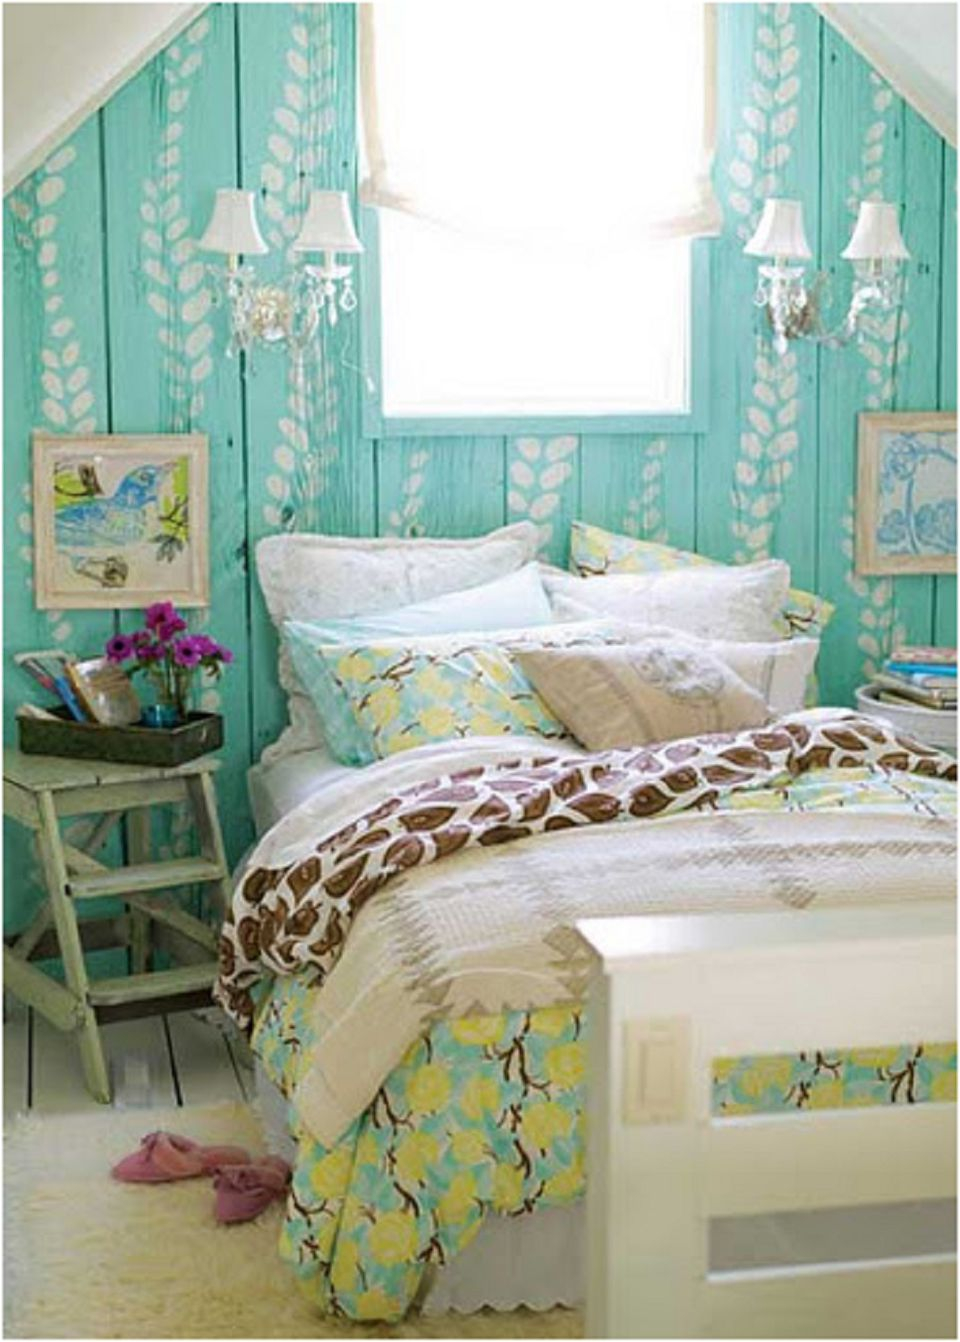 Epic Vintage Bedroom Decorating Ideas And Photos intended for Unique Vintage Bedroom